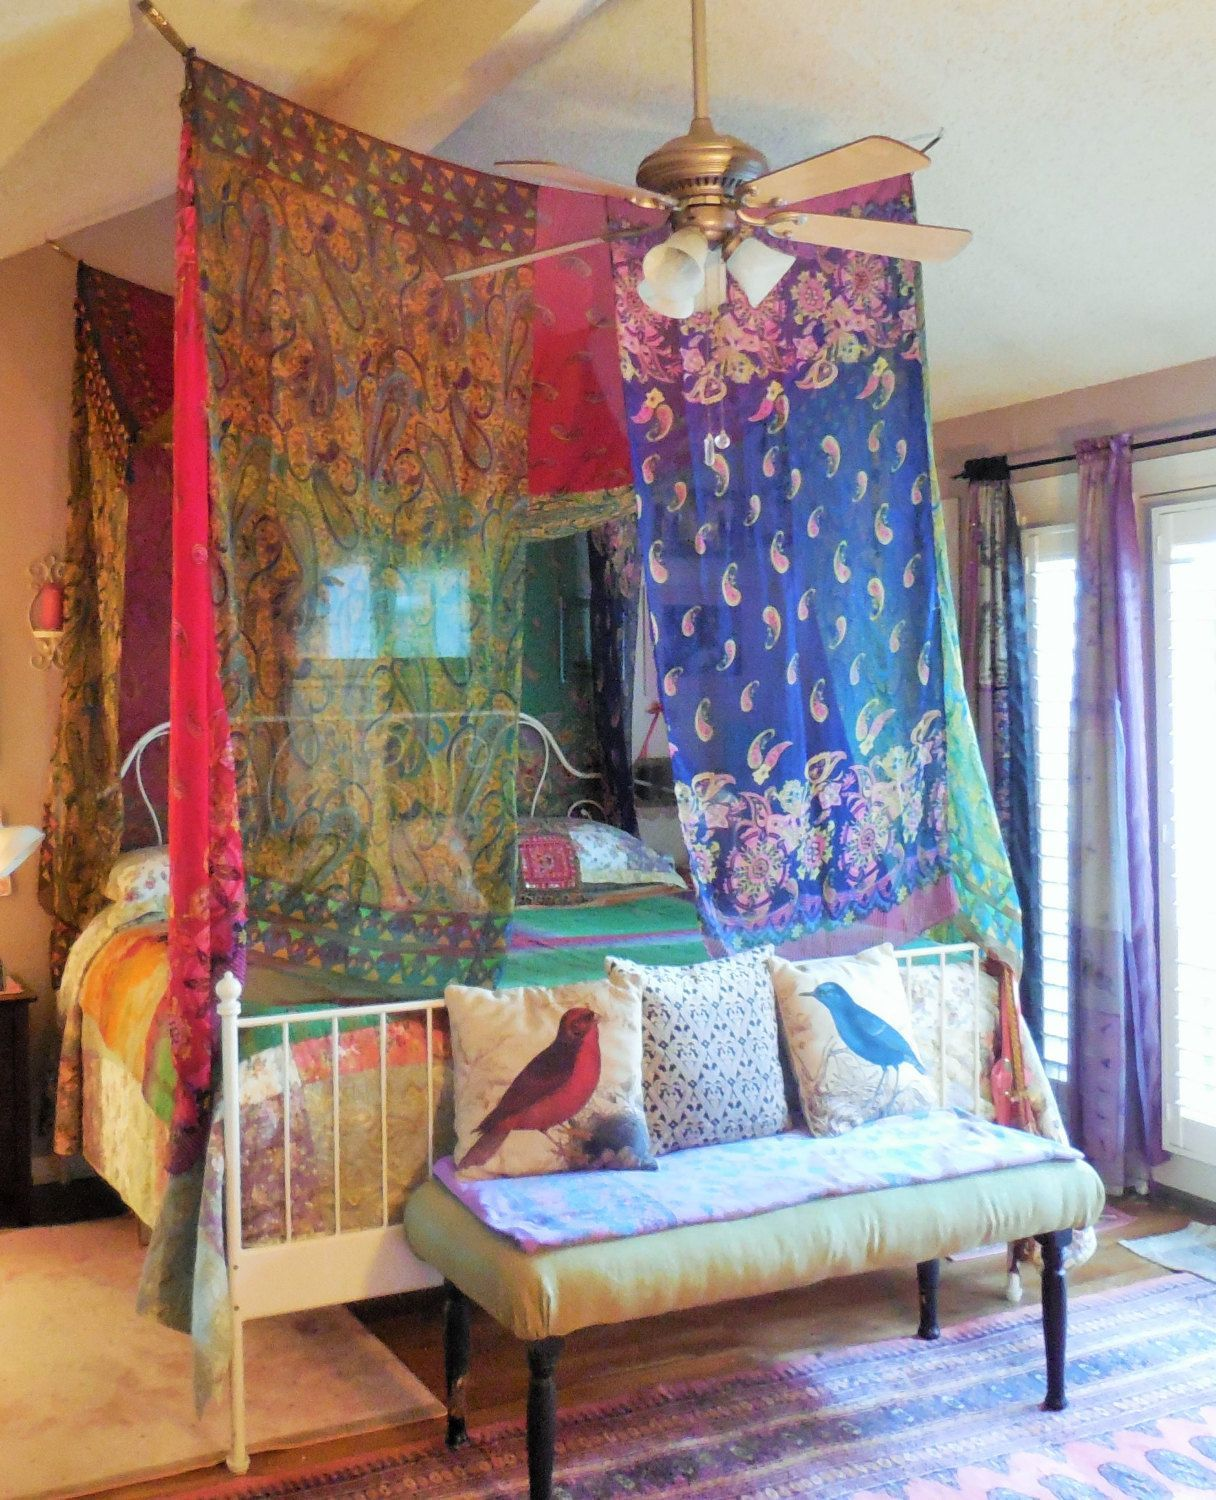 RESERVED FOR TINA  Gypsy Bohemian Bed Canopy Room Tent  RESERVED FOR TINA Gypsy Bohemian Bed Canopy Room Tent